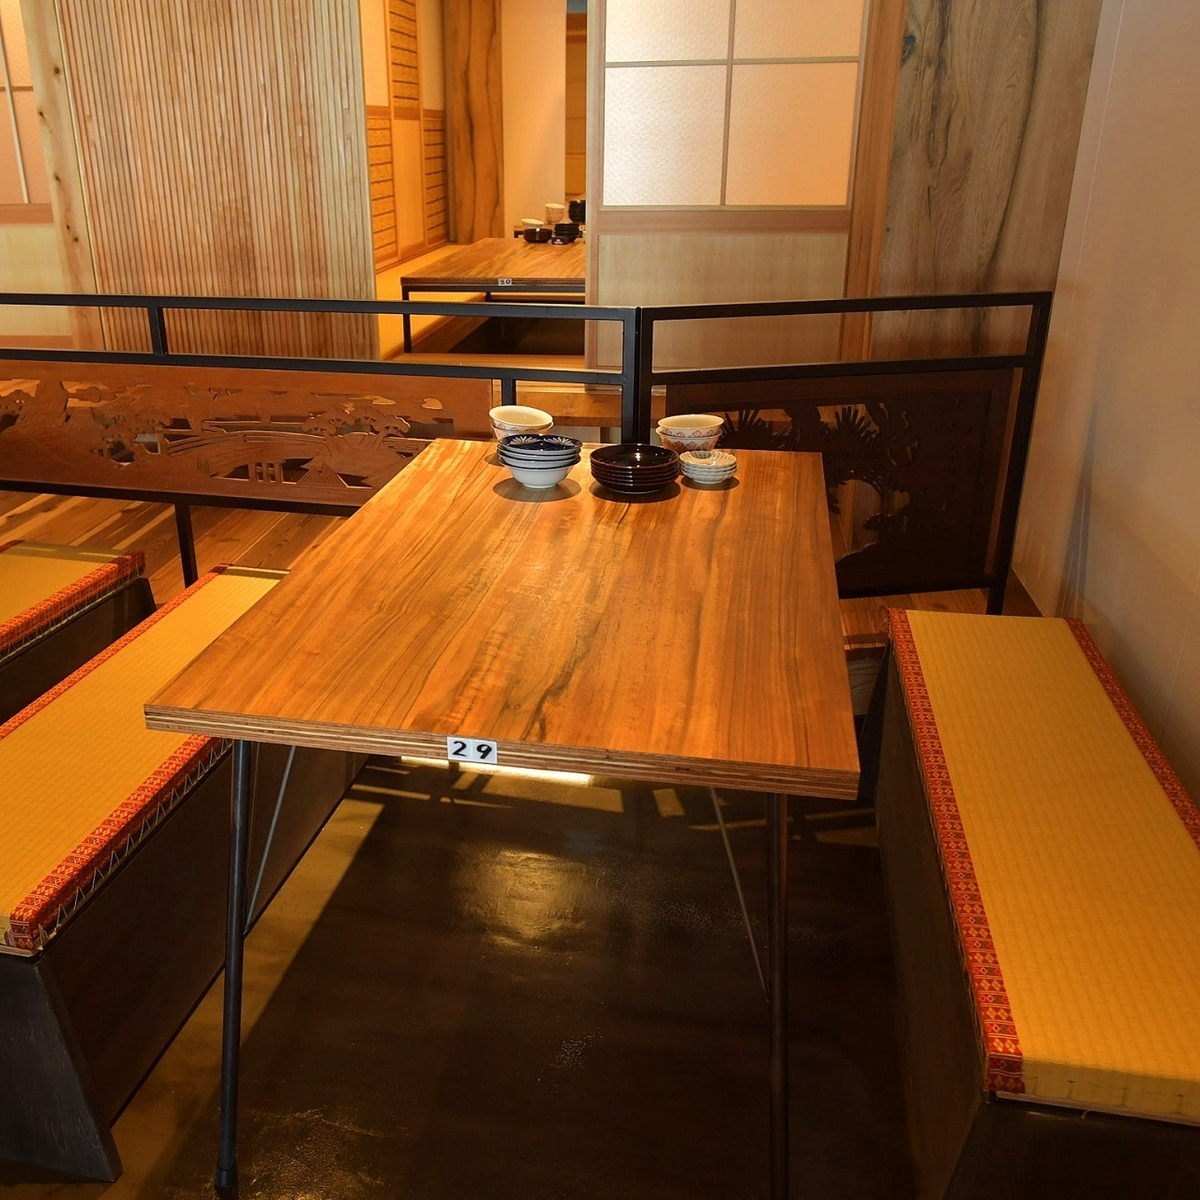 The smell of tatami makes you feel nostalgic ... the calm table seats.